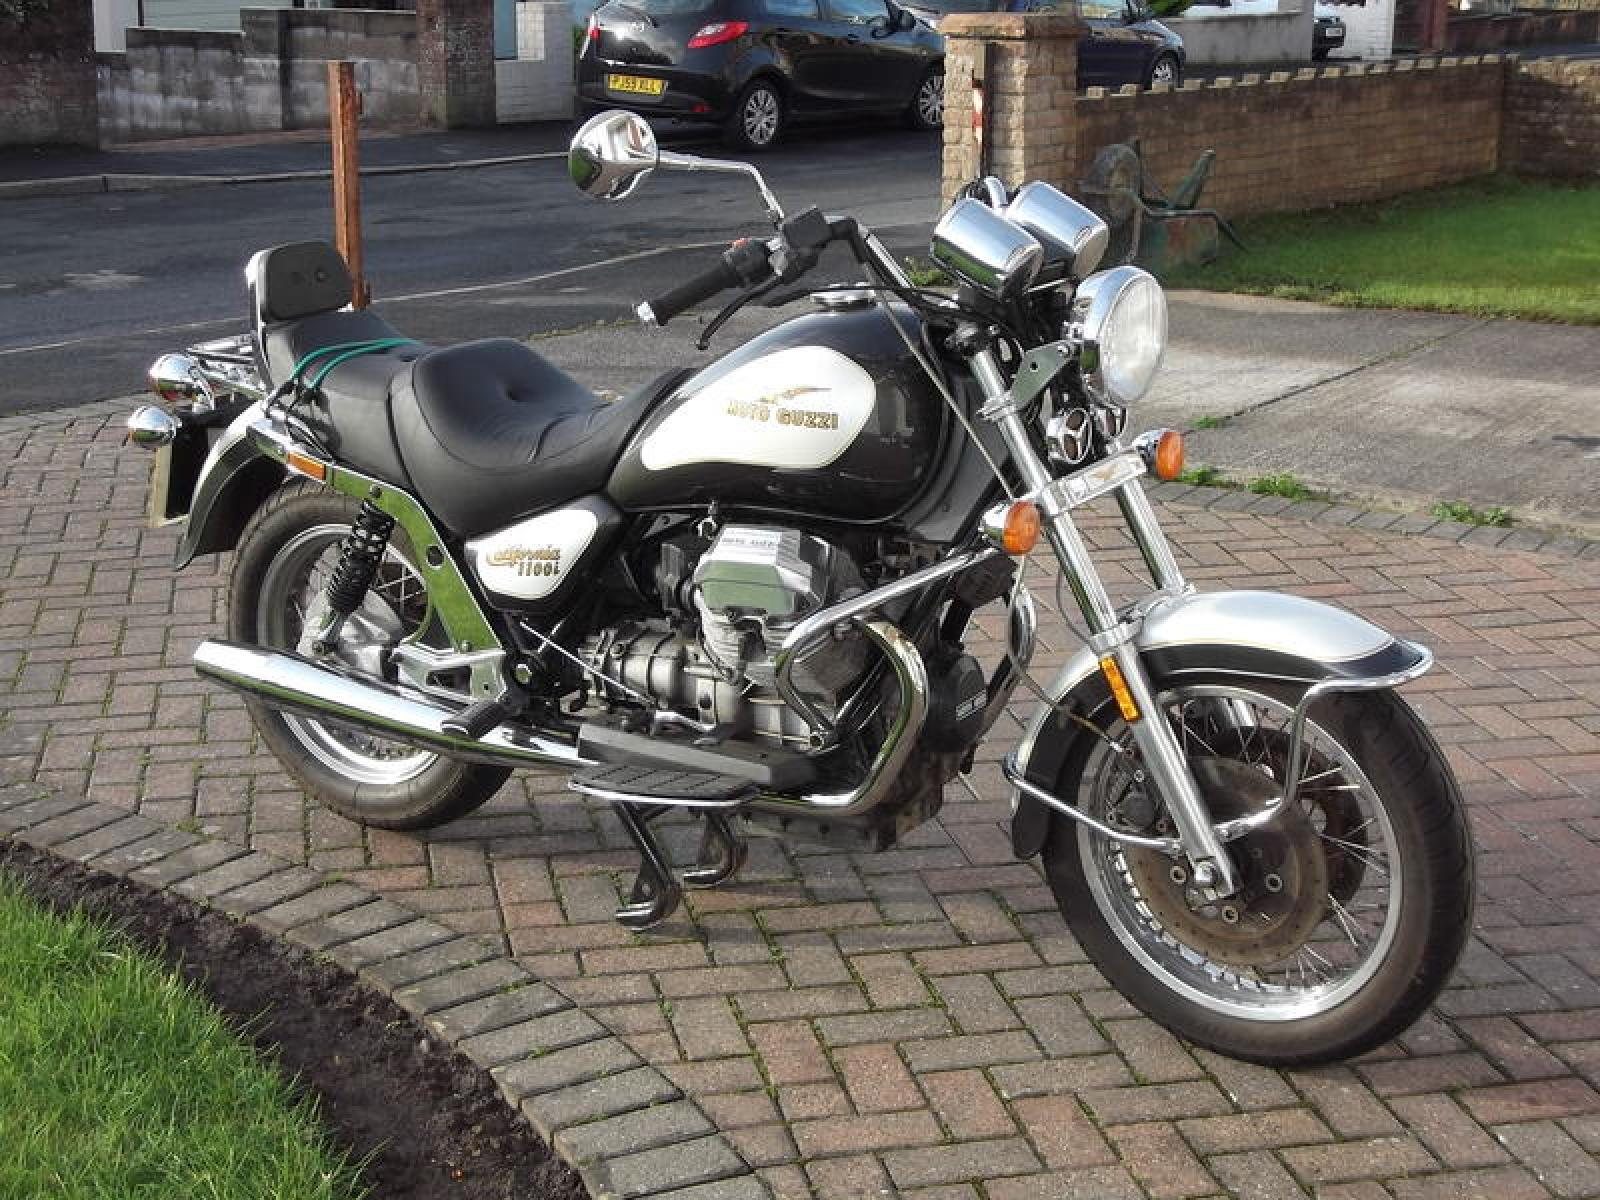 Moto Guzzi California 1100 Injection 1995 images #109337